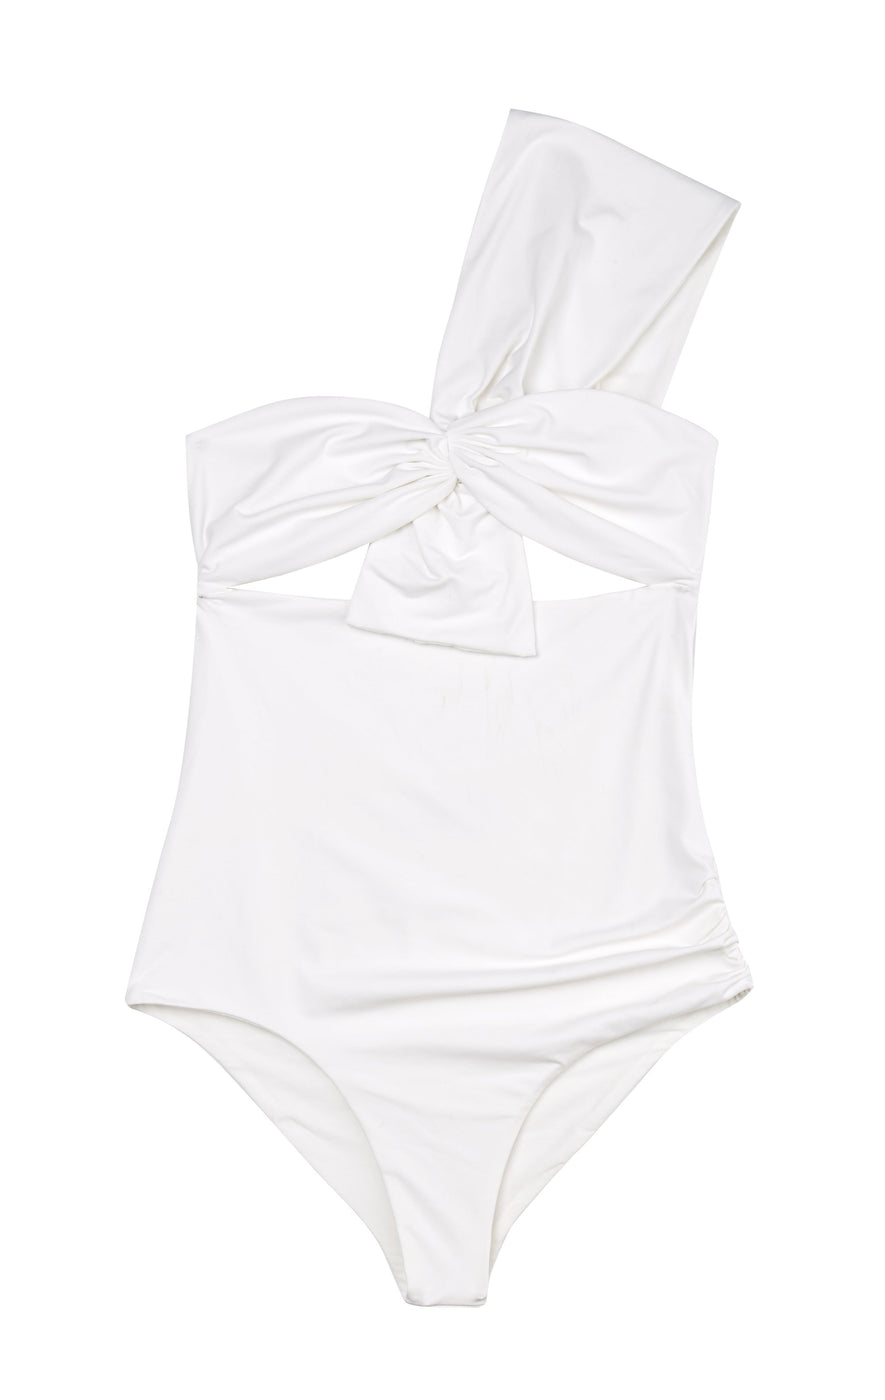 Venice Maillot in Coconut